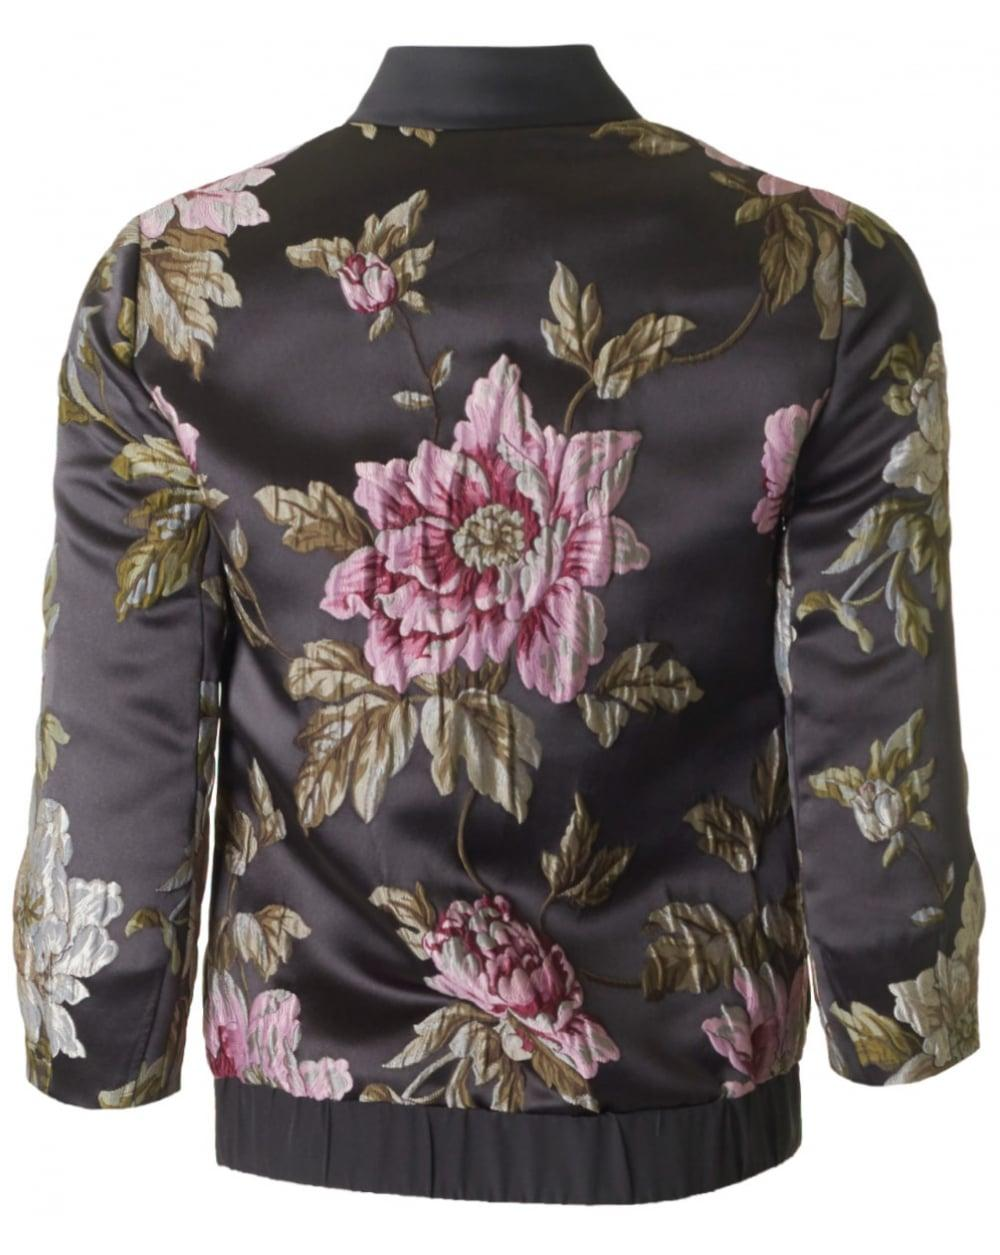 a20cf6ffa6e21 Lyst - Ted Baker Hartye Embroidered Bomber Jacket